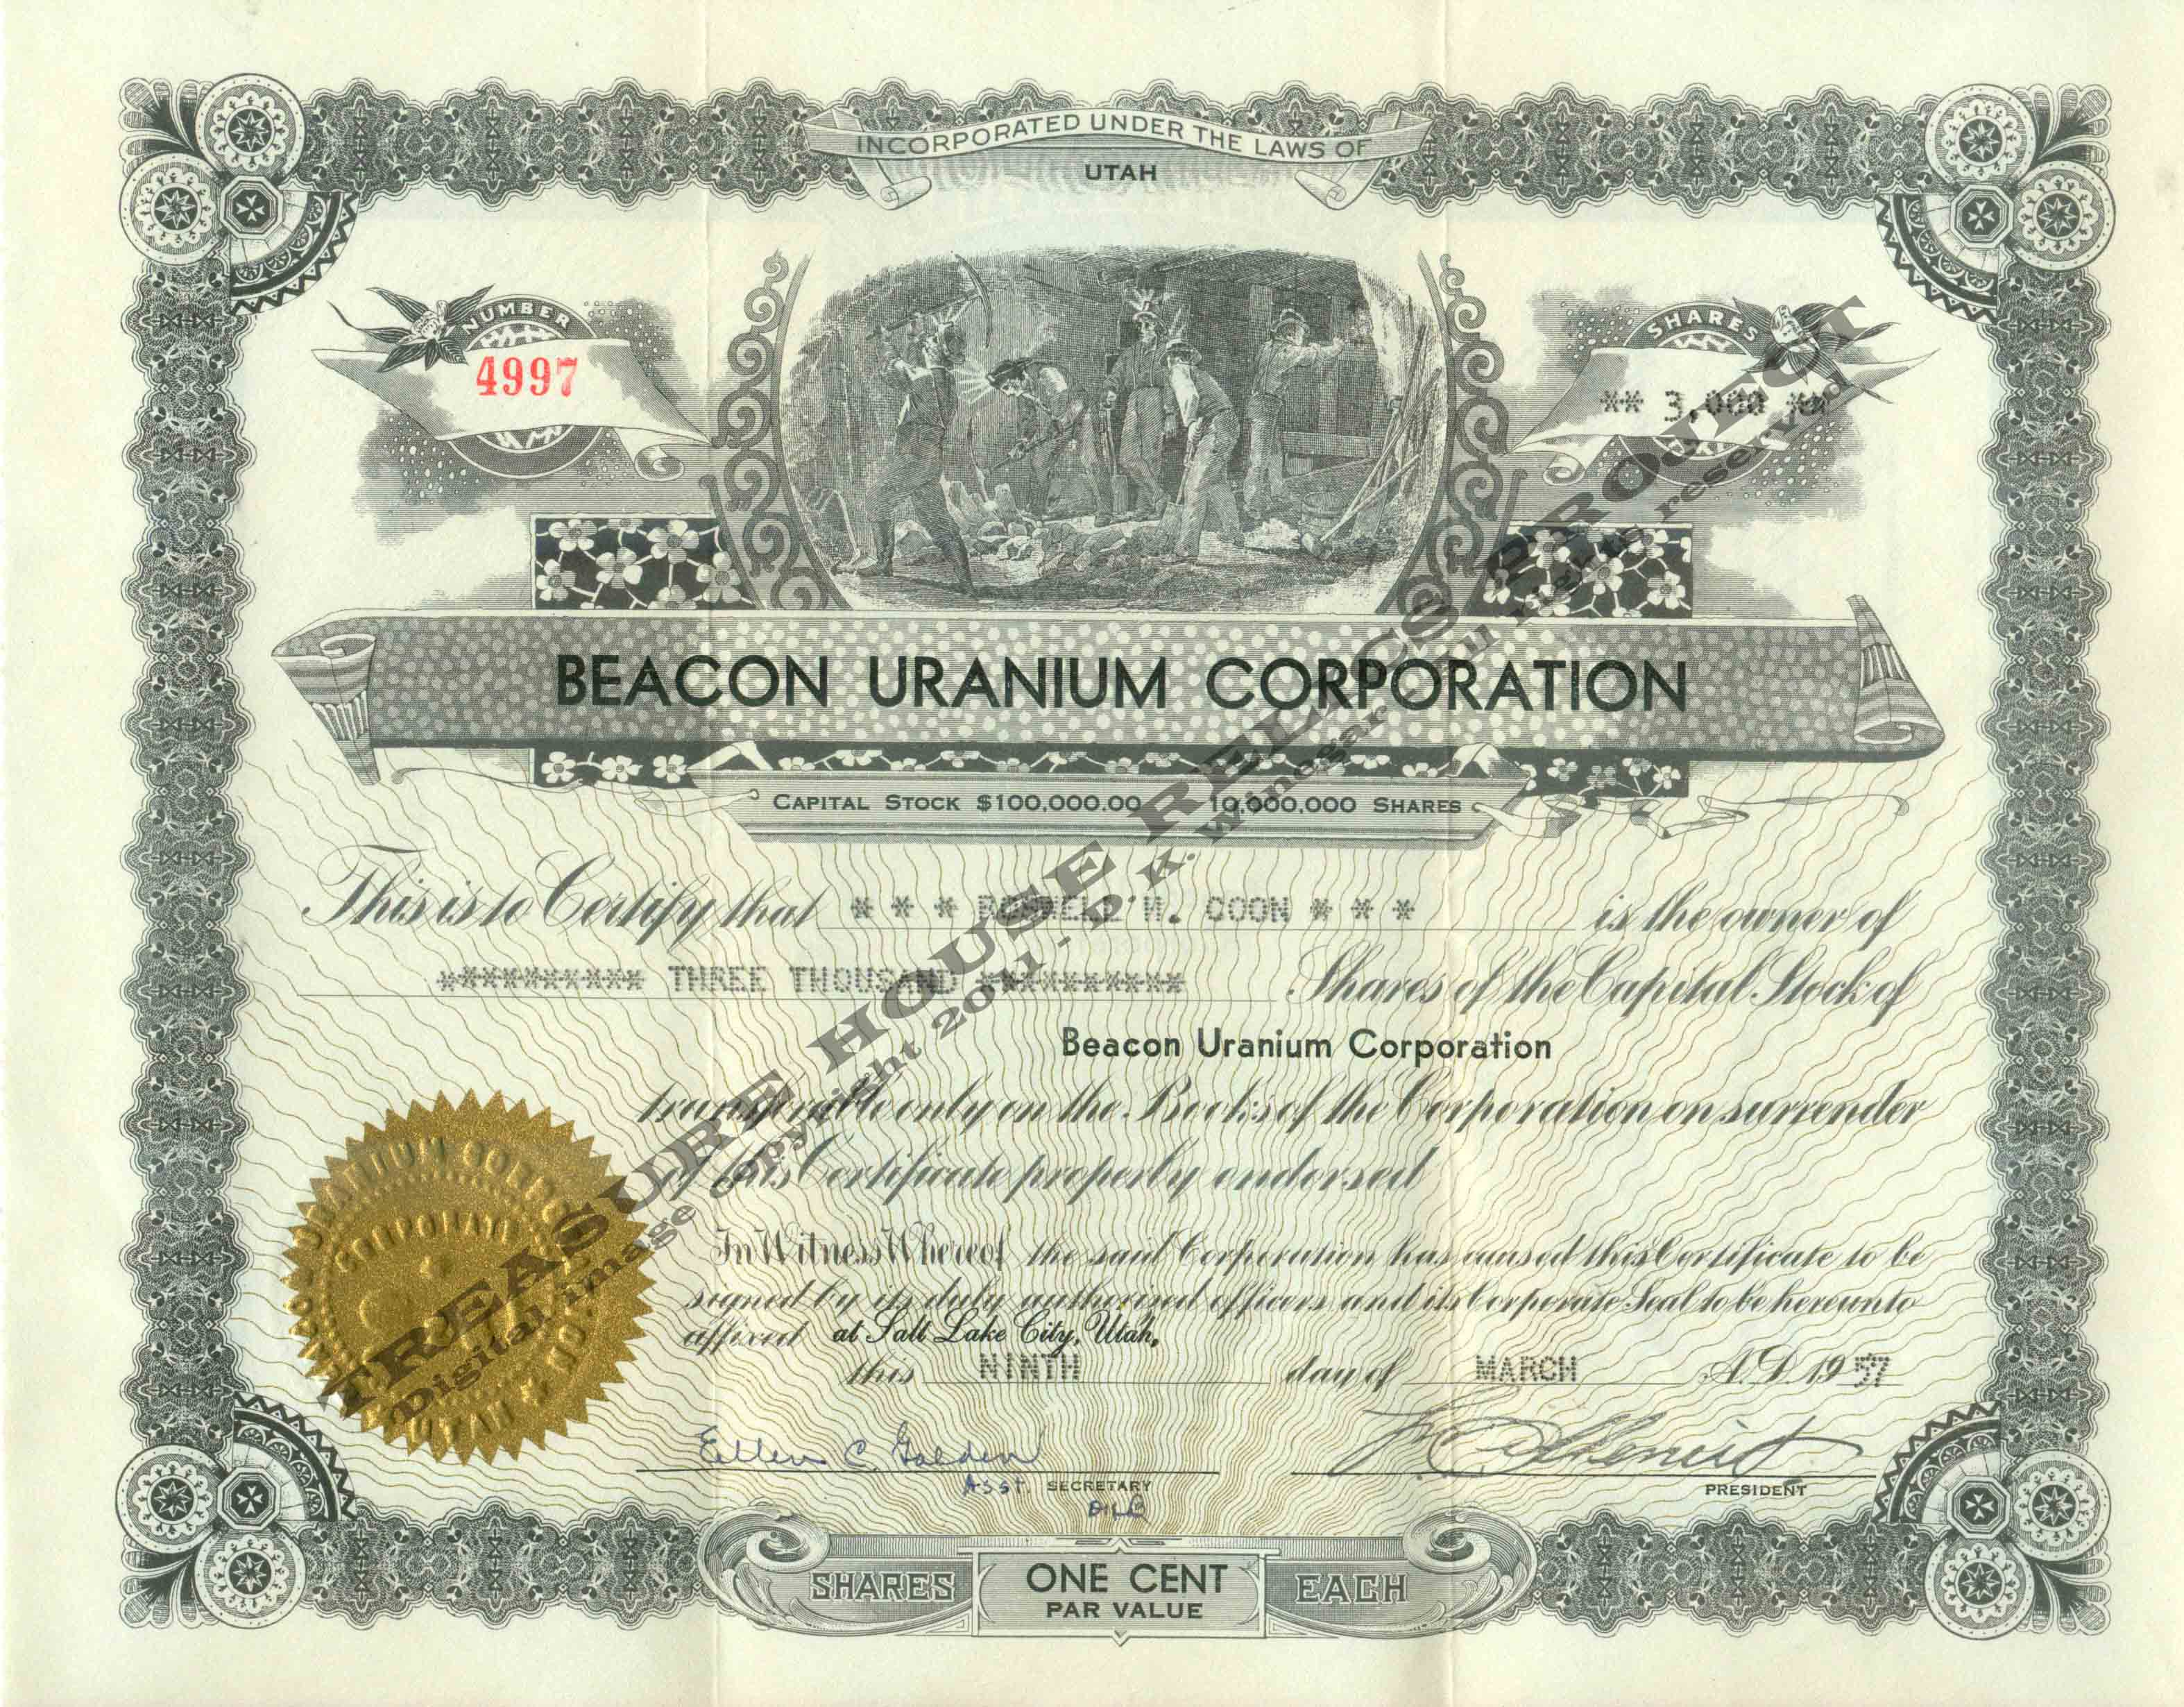 BEACON_URANIUM_CORP_4997_1957_WEB.jpg